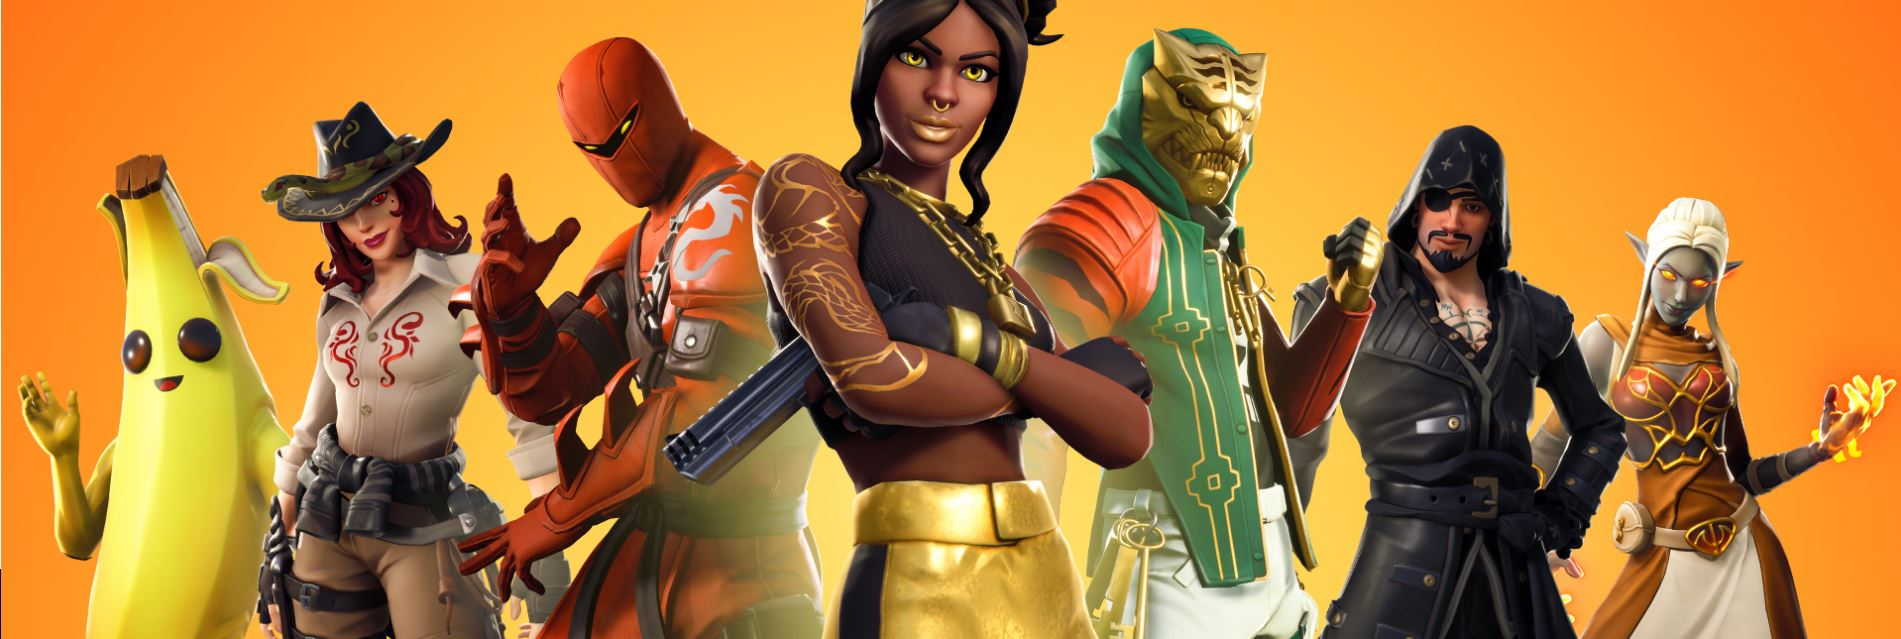 Fortnite: Liste aller Skins und Cosmetics im Battle Pass zu Season 8